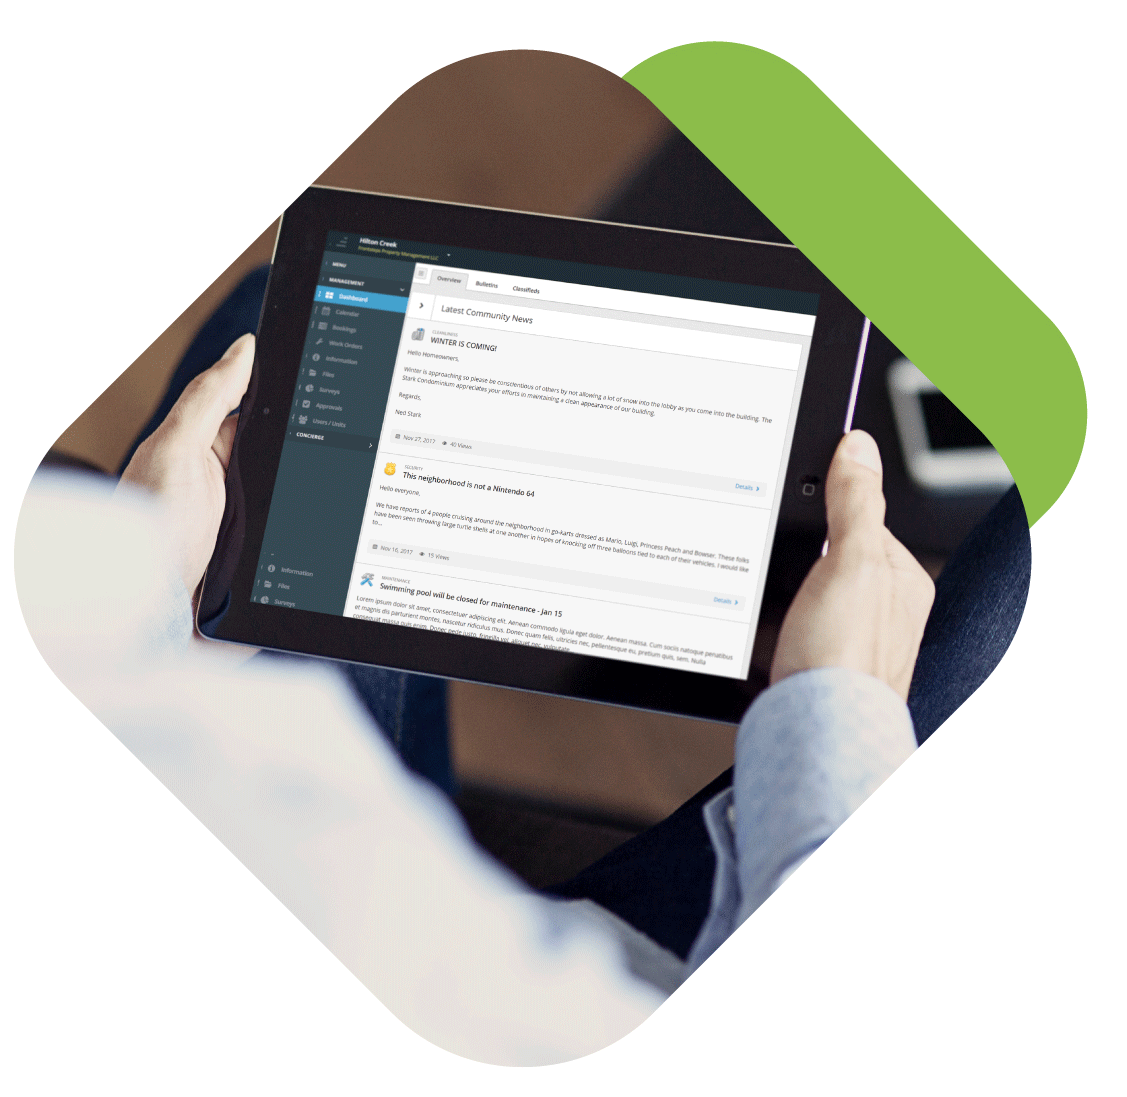 Tablet In-hand - Dashboard Interface